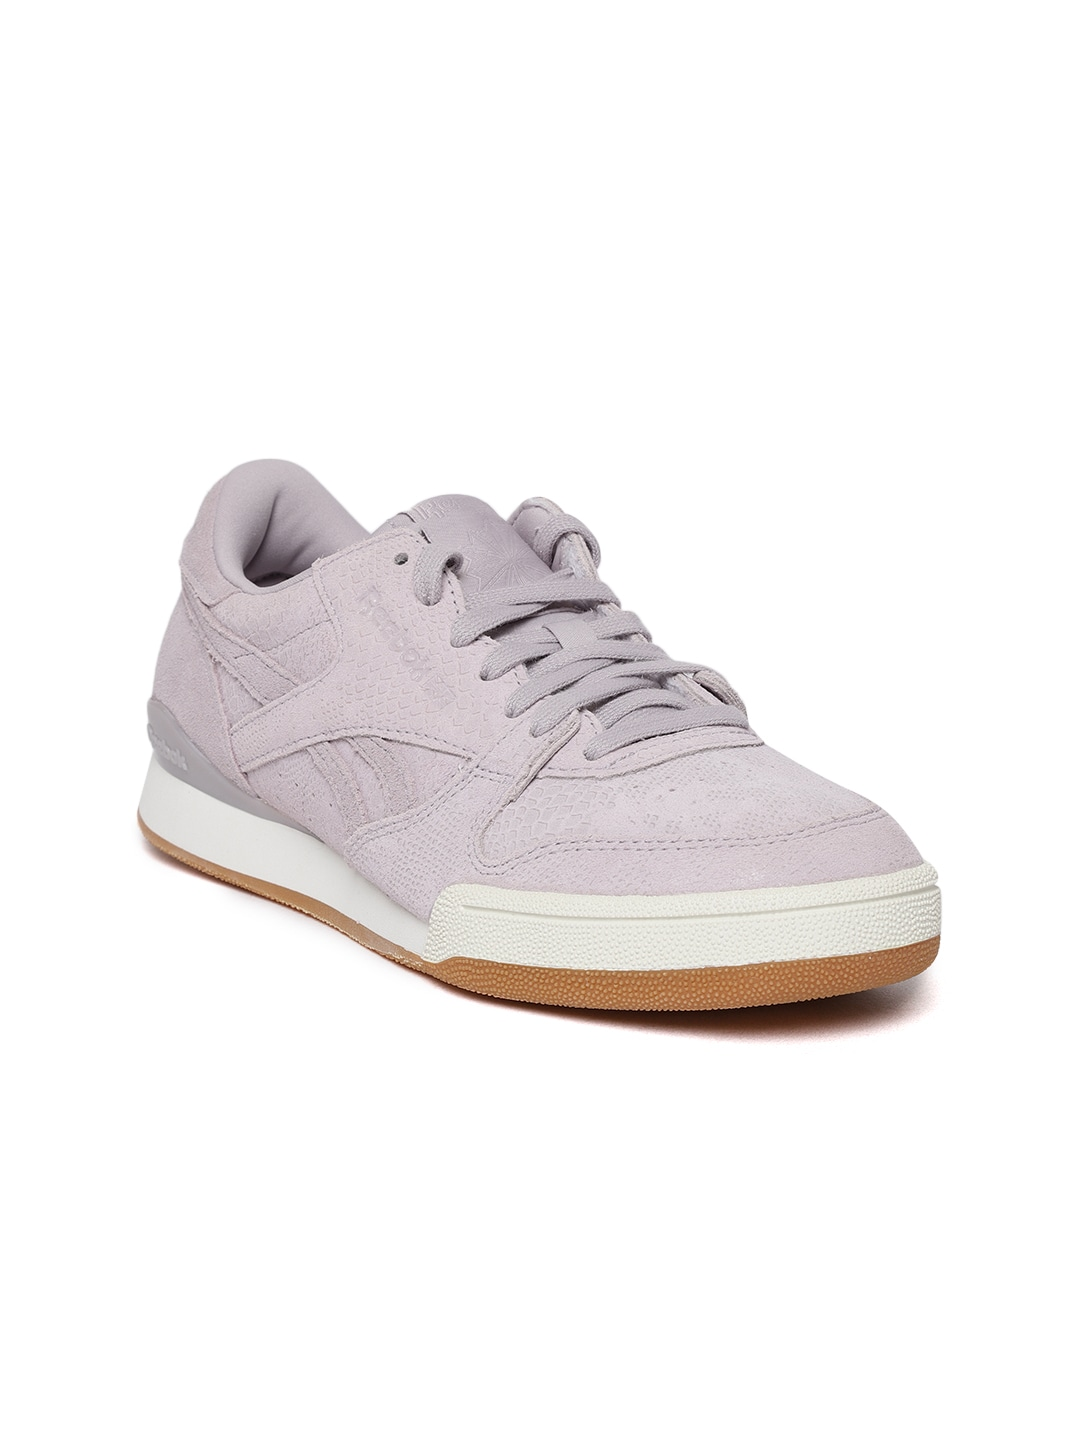 0e83cd3027d72 Shoes Footwear Women Reebok Casual - Buy Shoes Footwear Women Reebok Casual  online in India